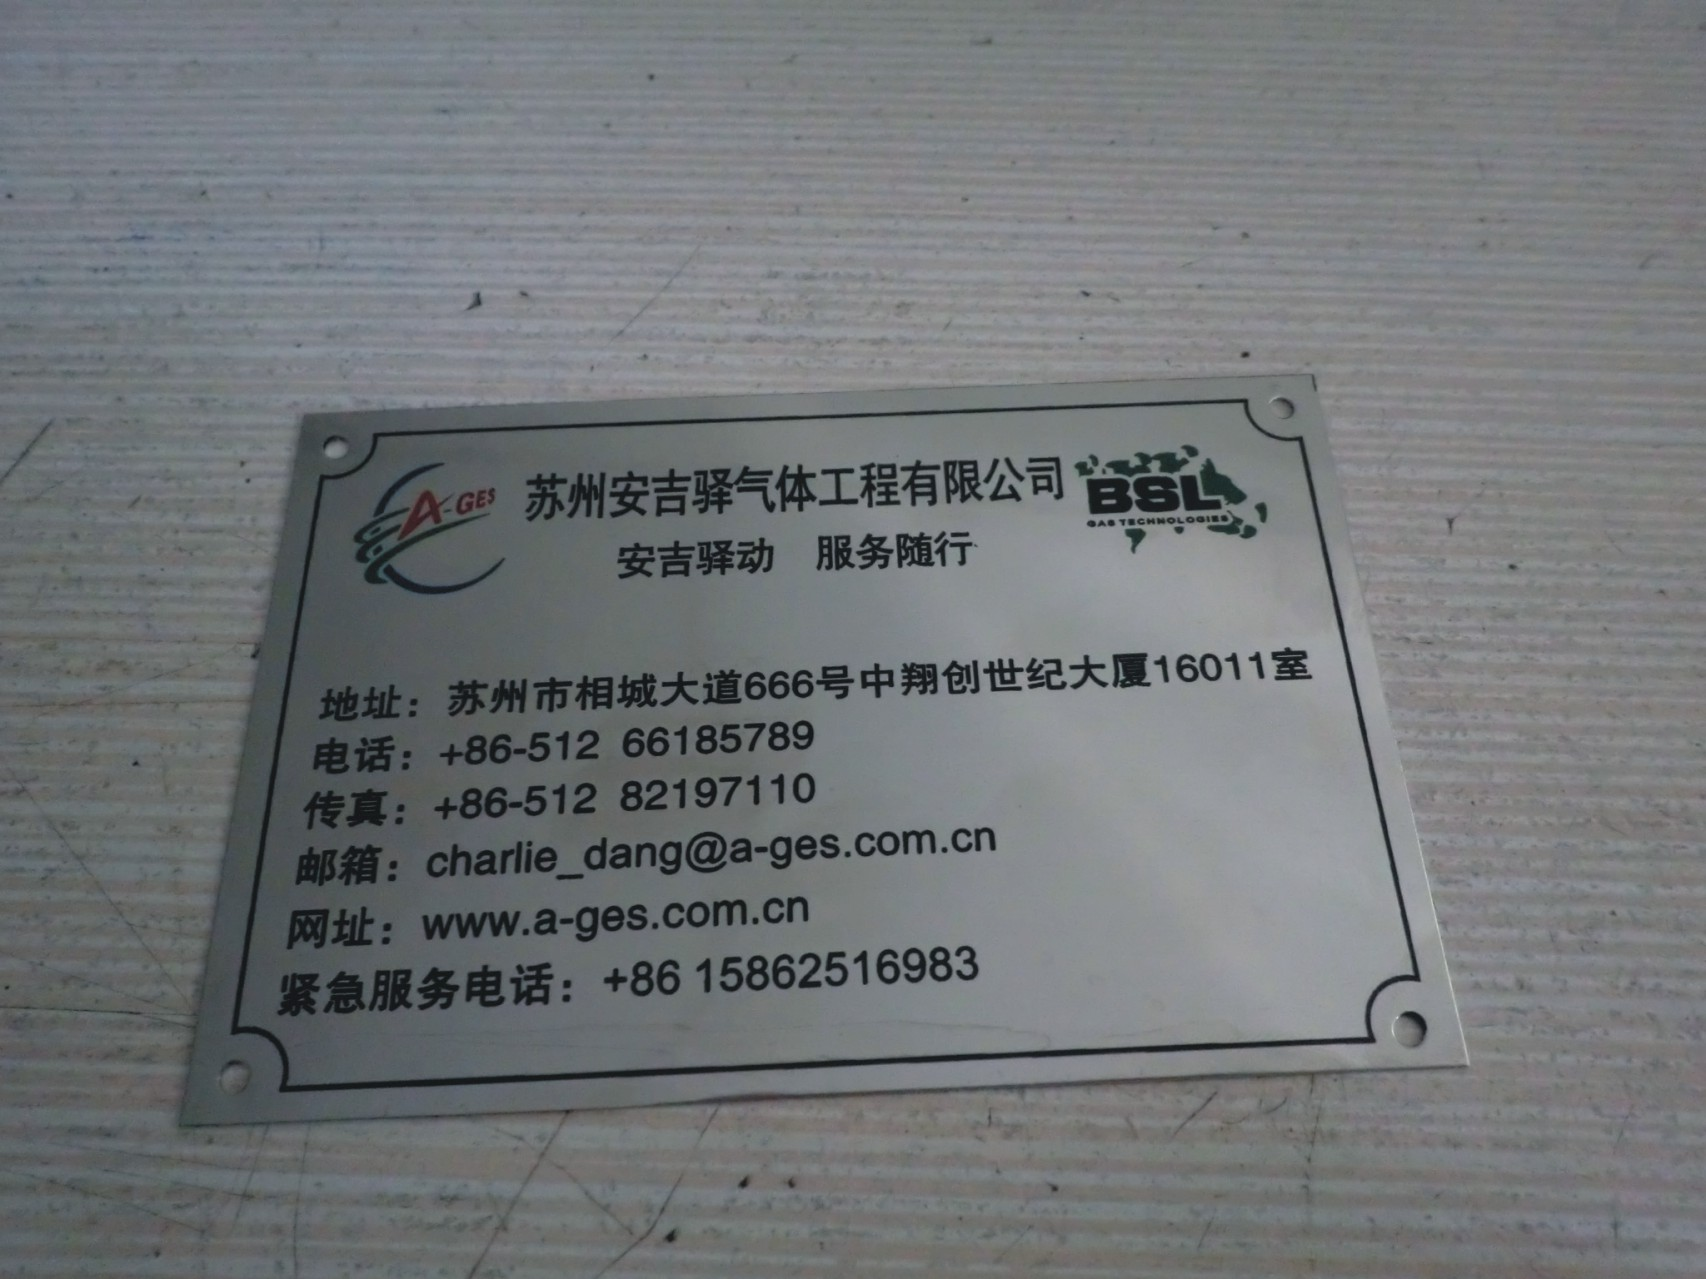 Stainless steel aluminum signs, nameplates, custom-made aluminum plate, stainless steel, metal, bronze, silk screen, corrosion, making molds